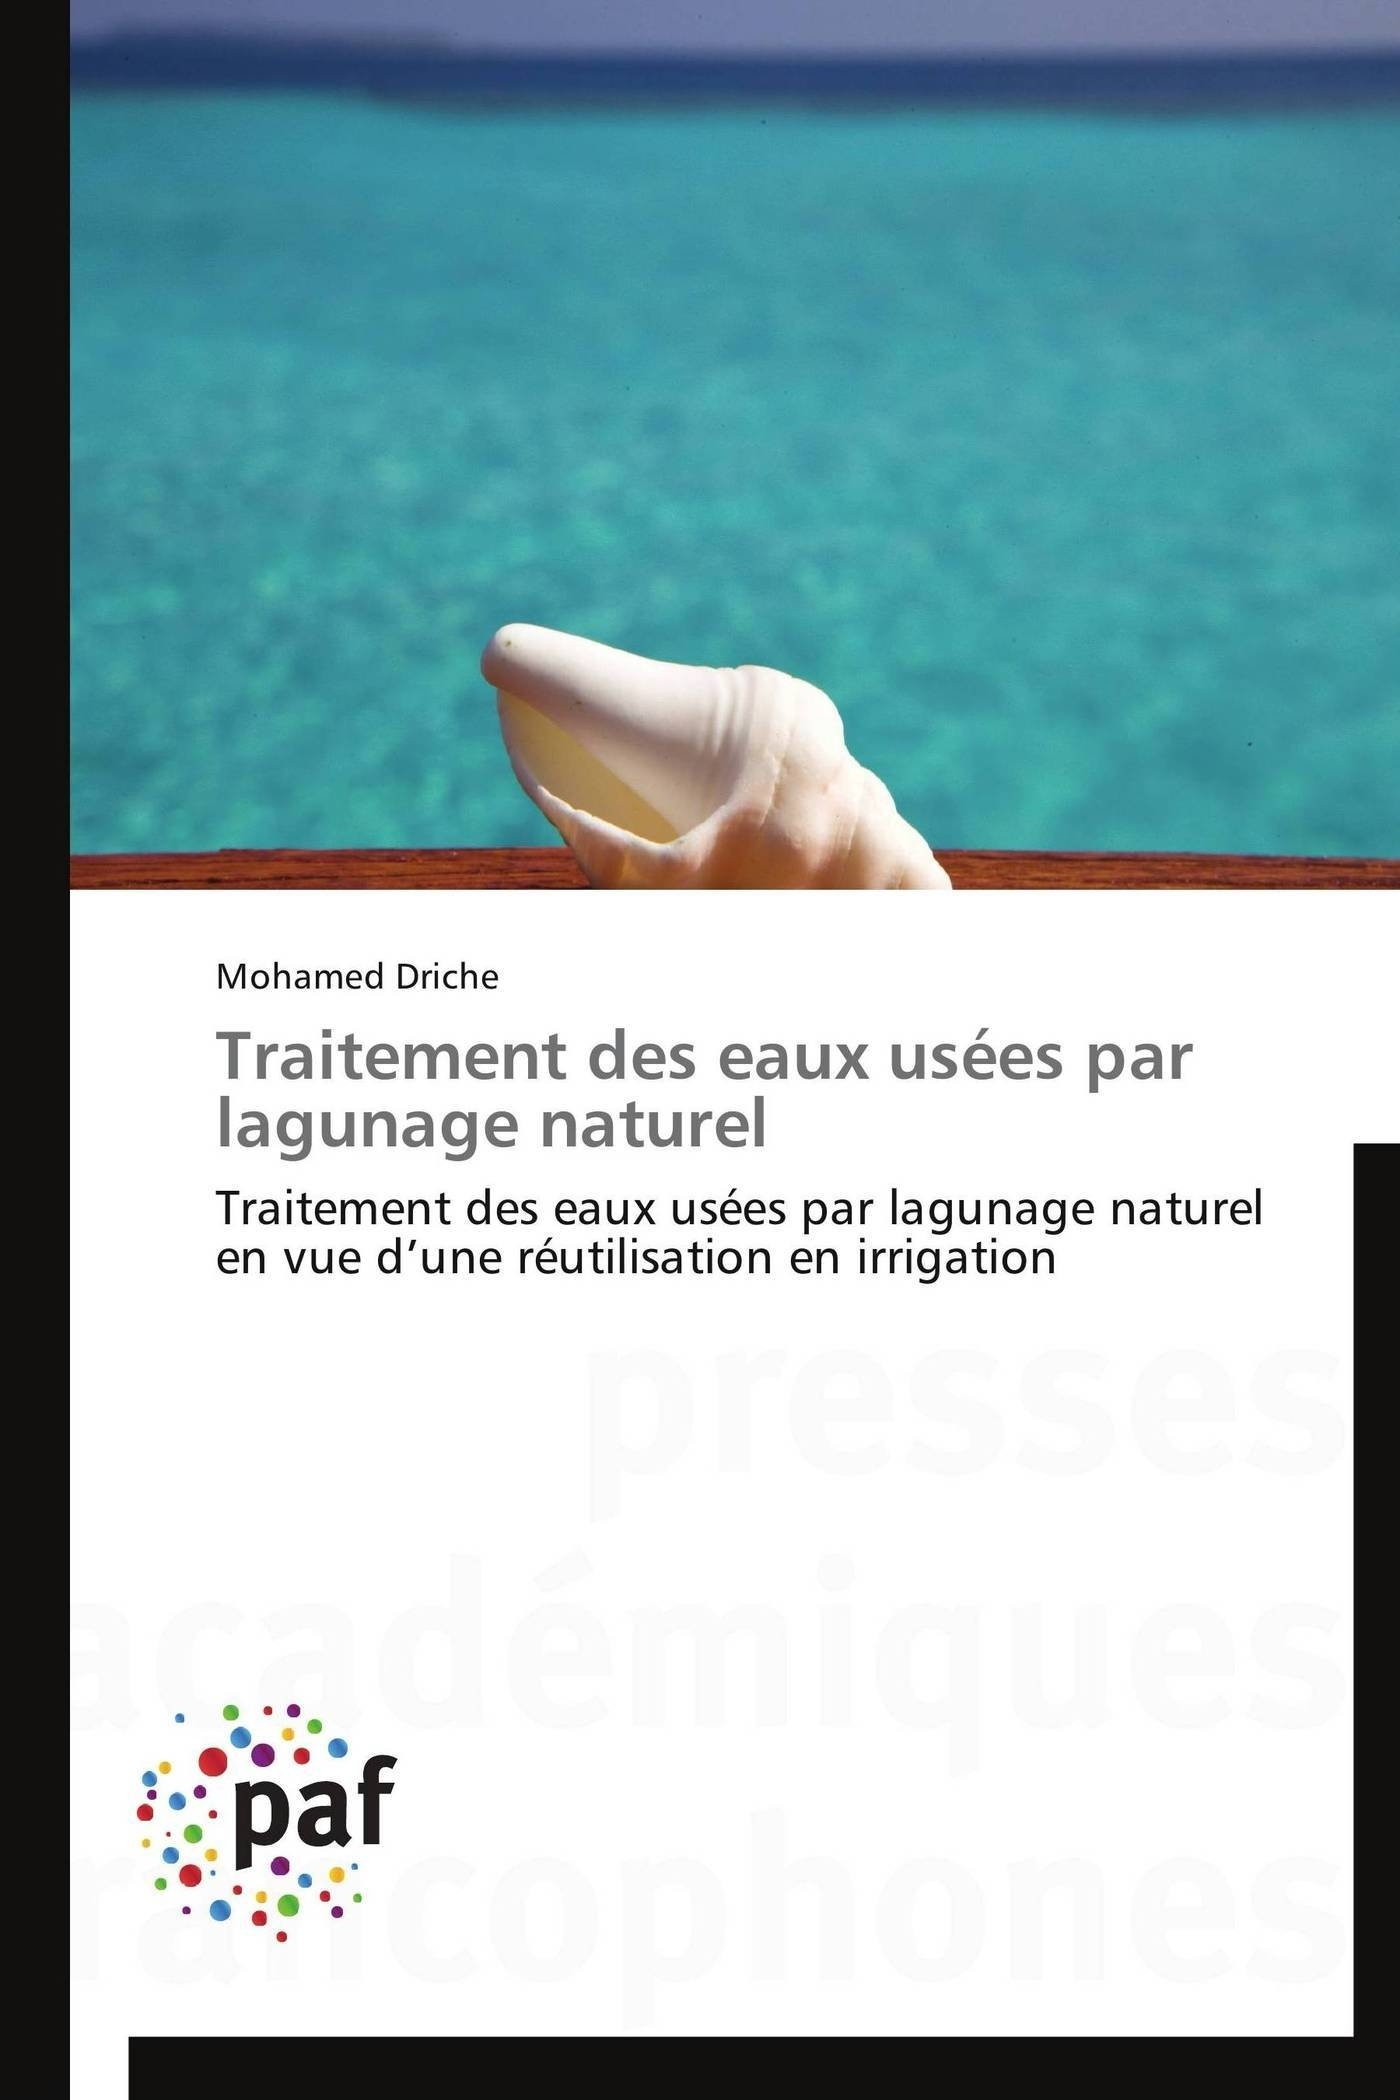 TRAITEMENT DES EAUX USEES PAR LAGUNAGE NATUREL